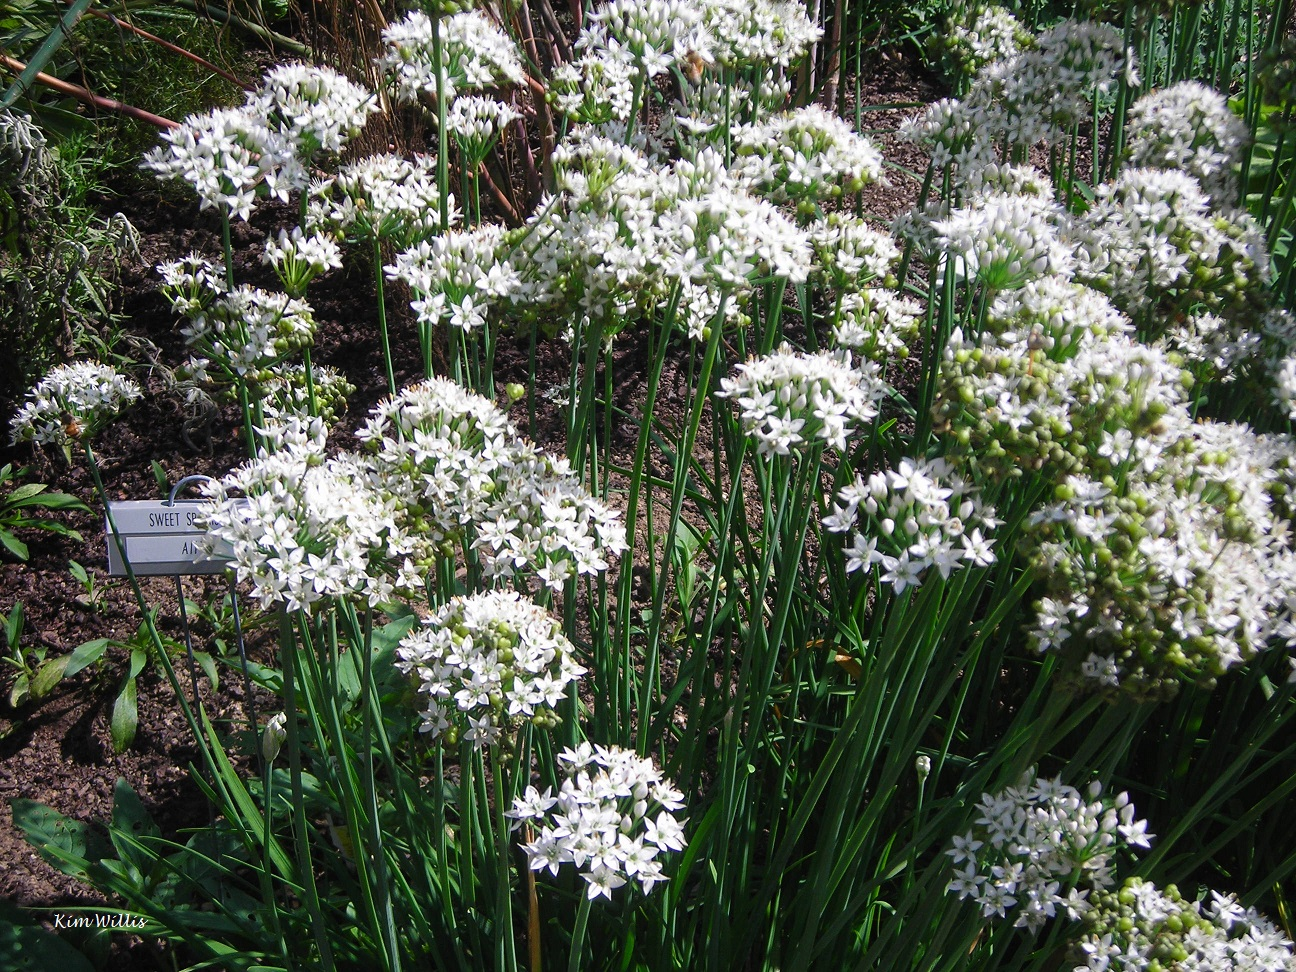 Small Flowered Alliums